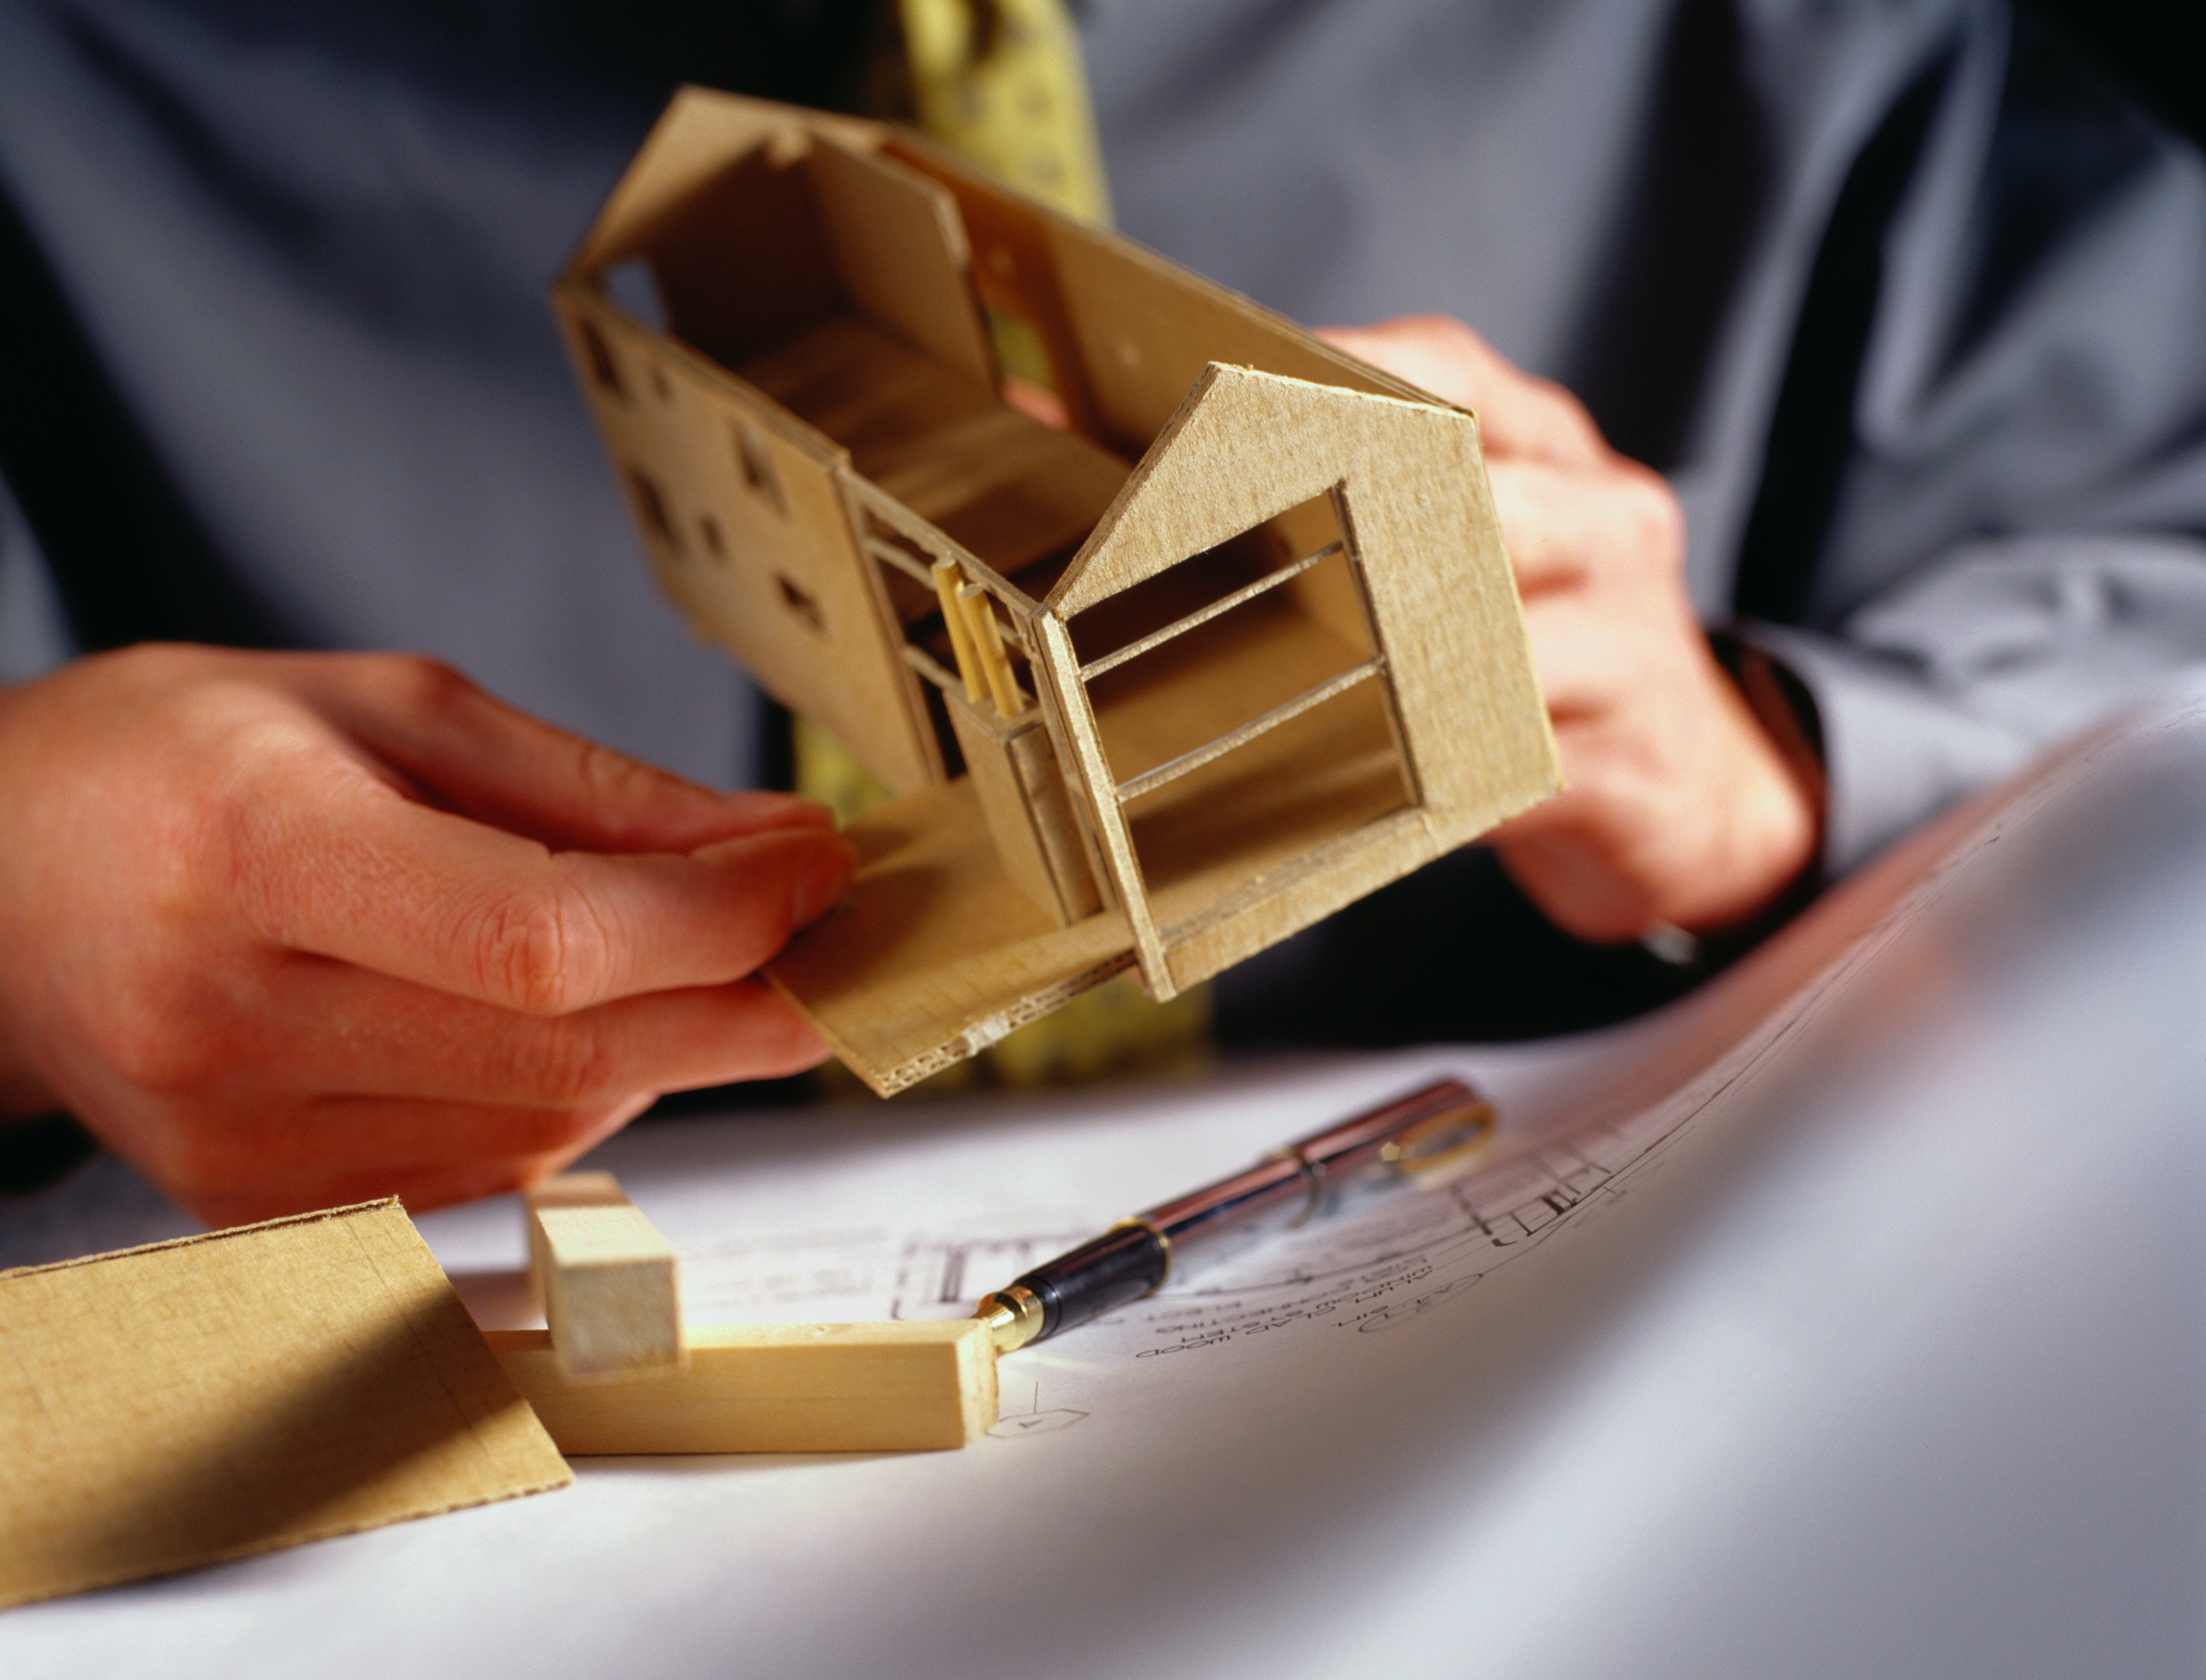 Young Architect Guide: Building Great Architecture Models